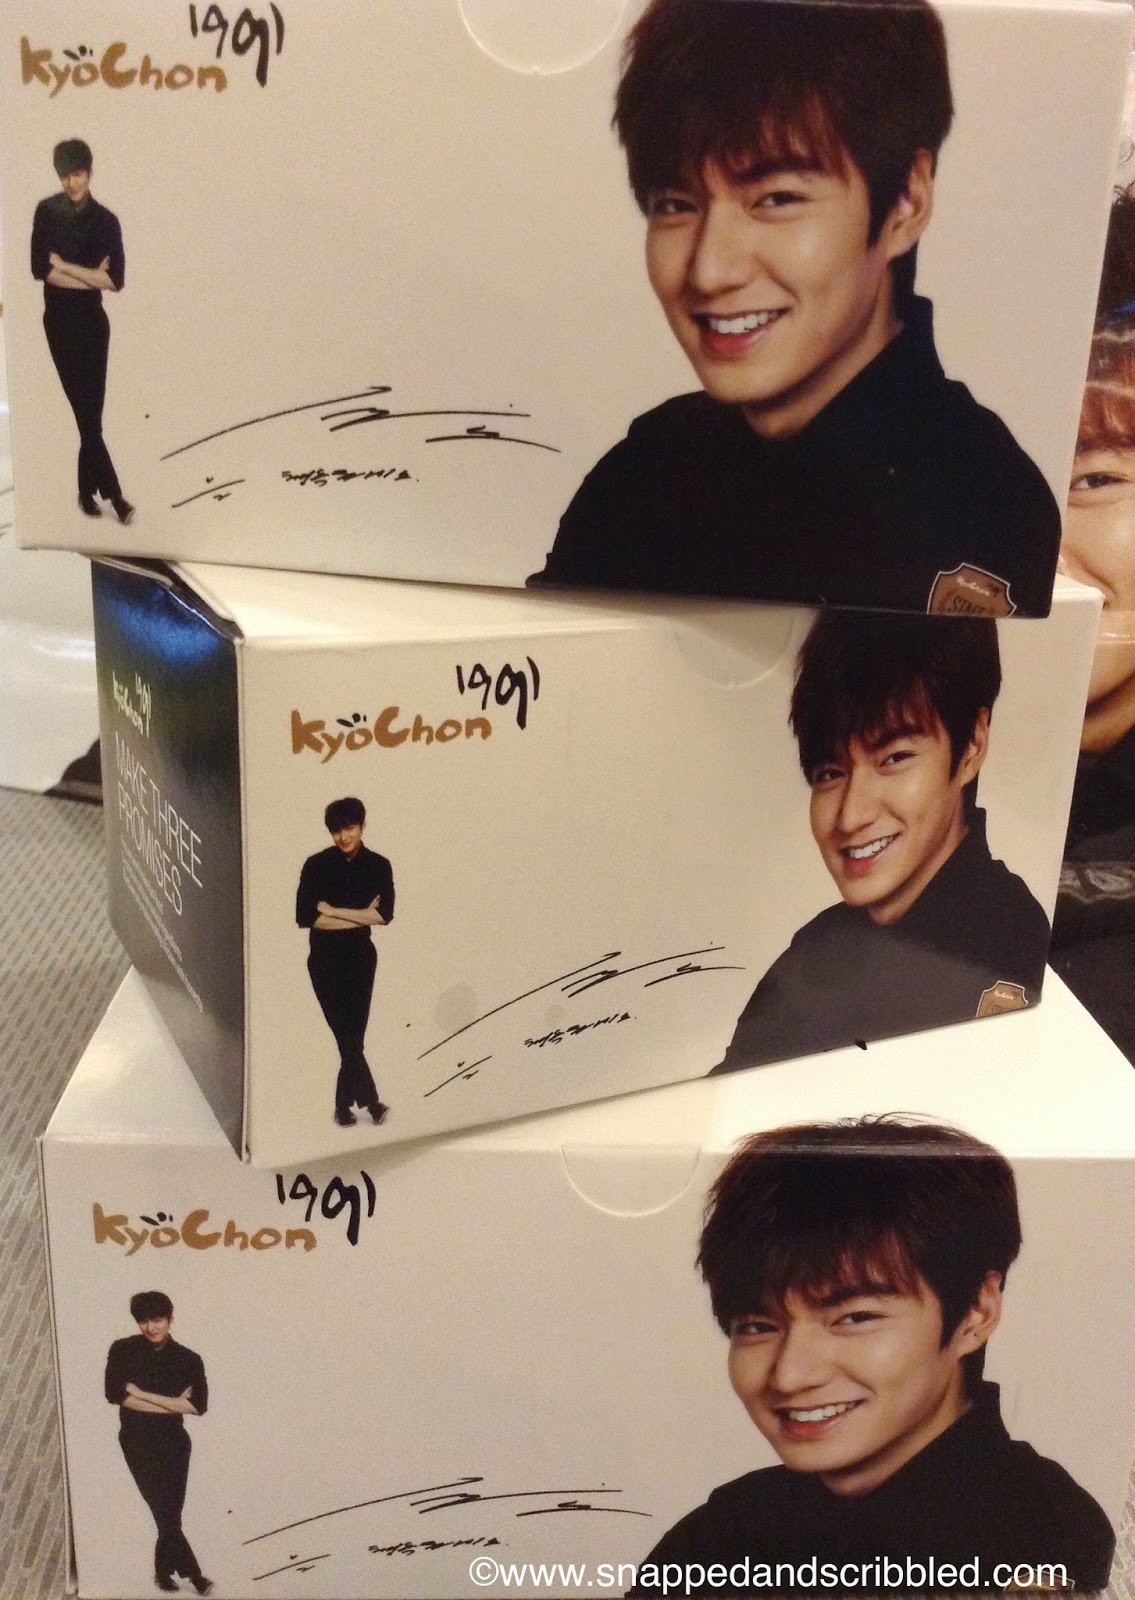 Korean Overload: Lee Min Ho and Kyochon Philippines